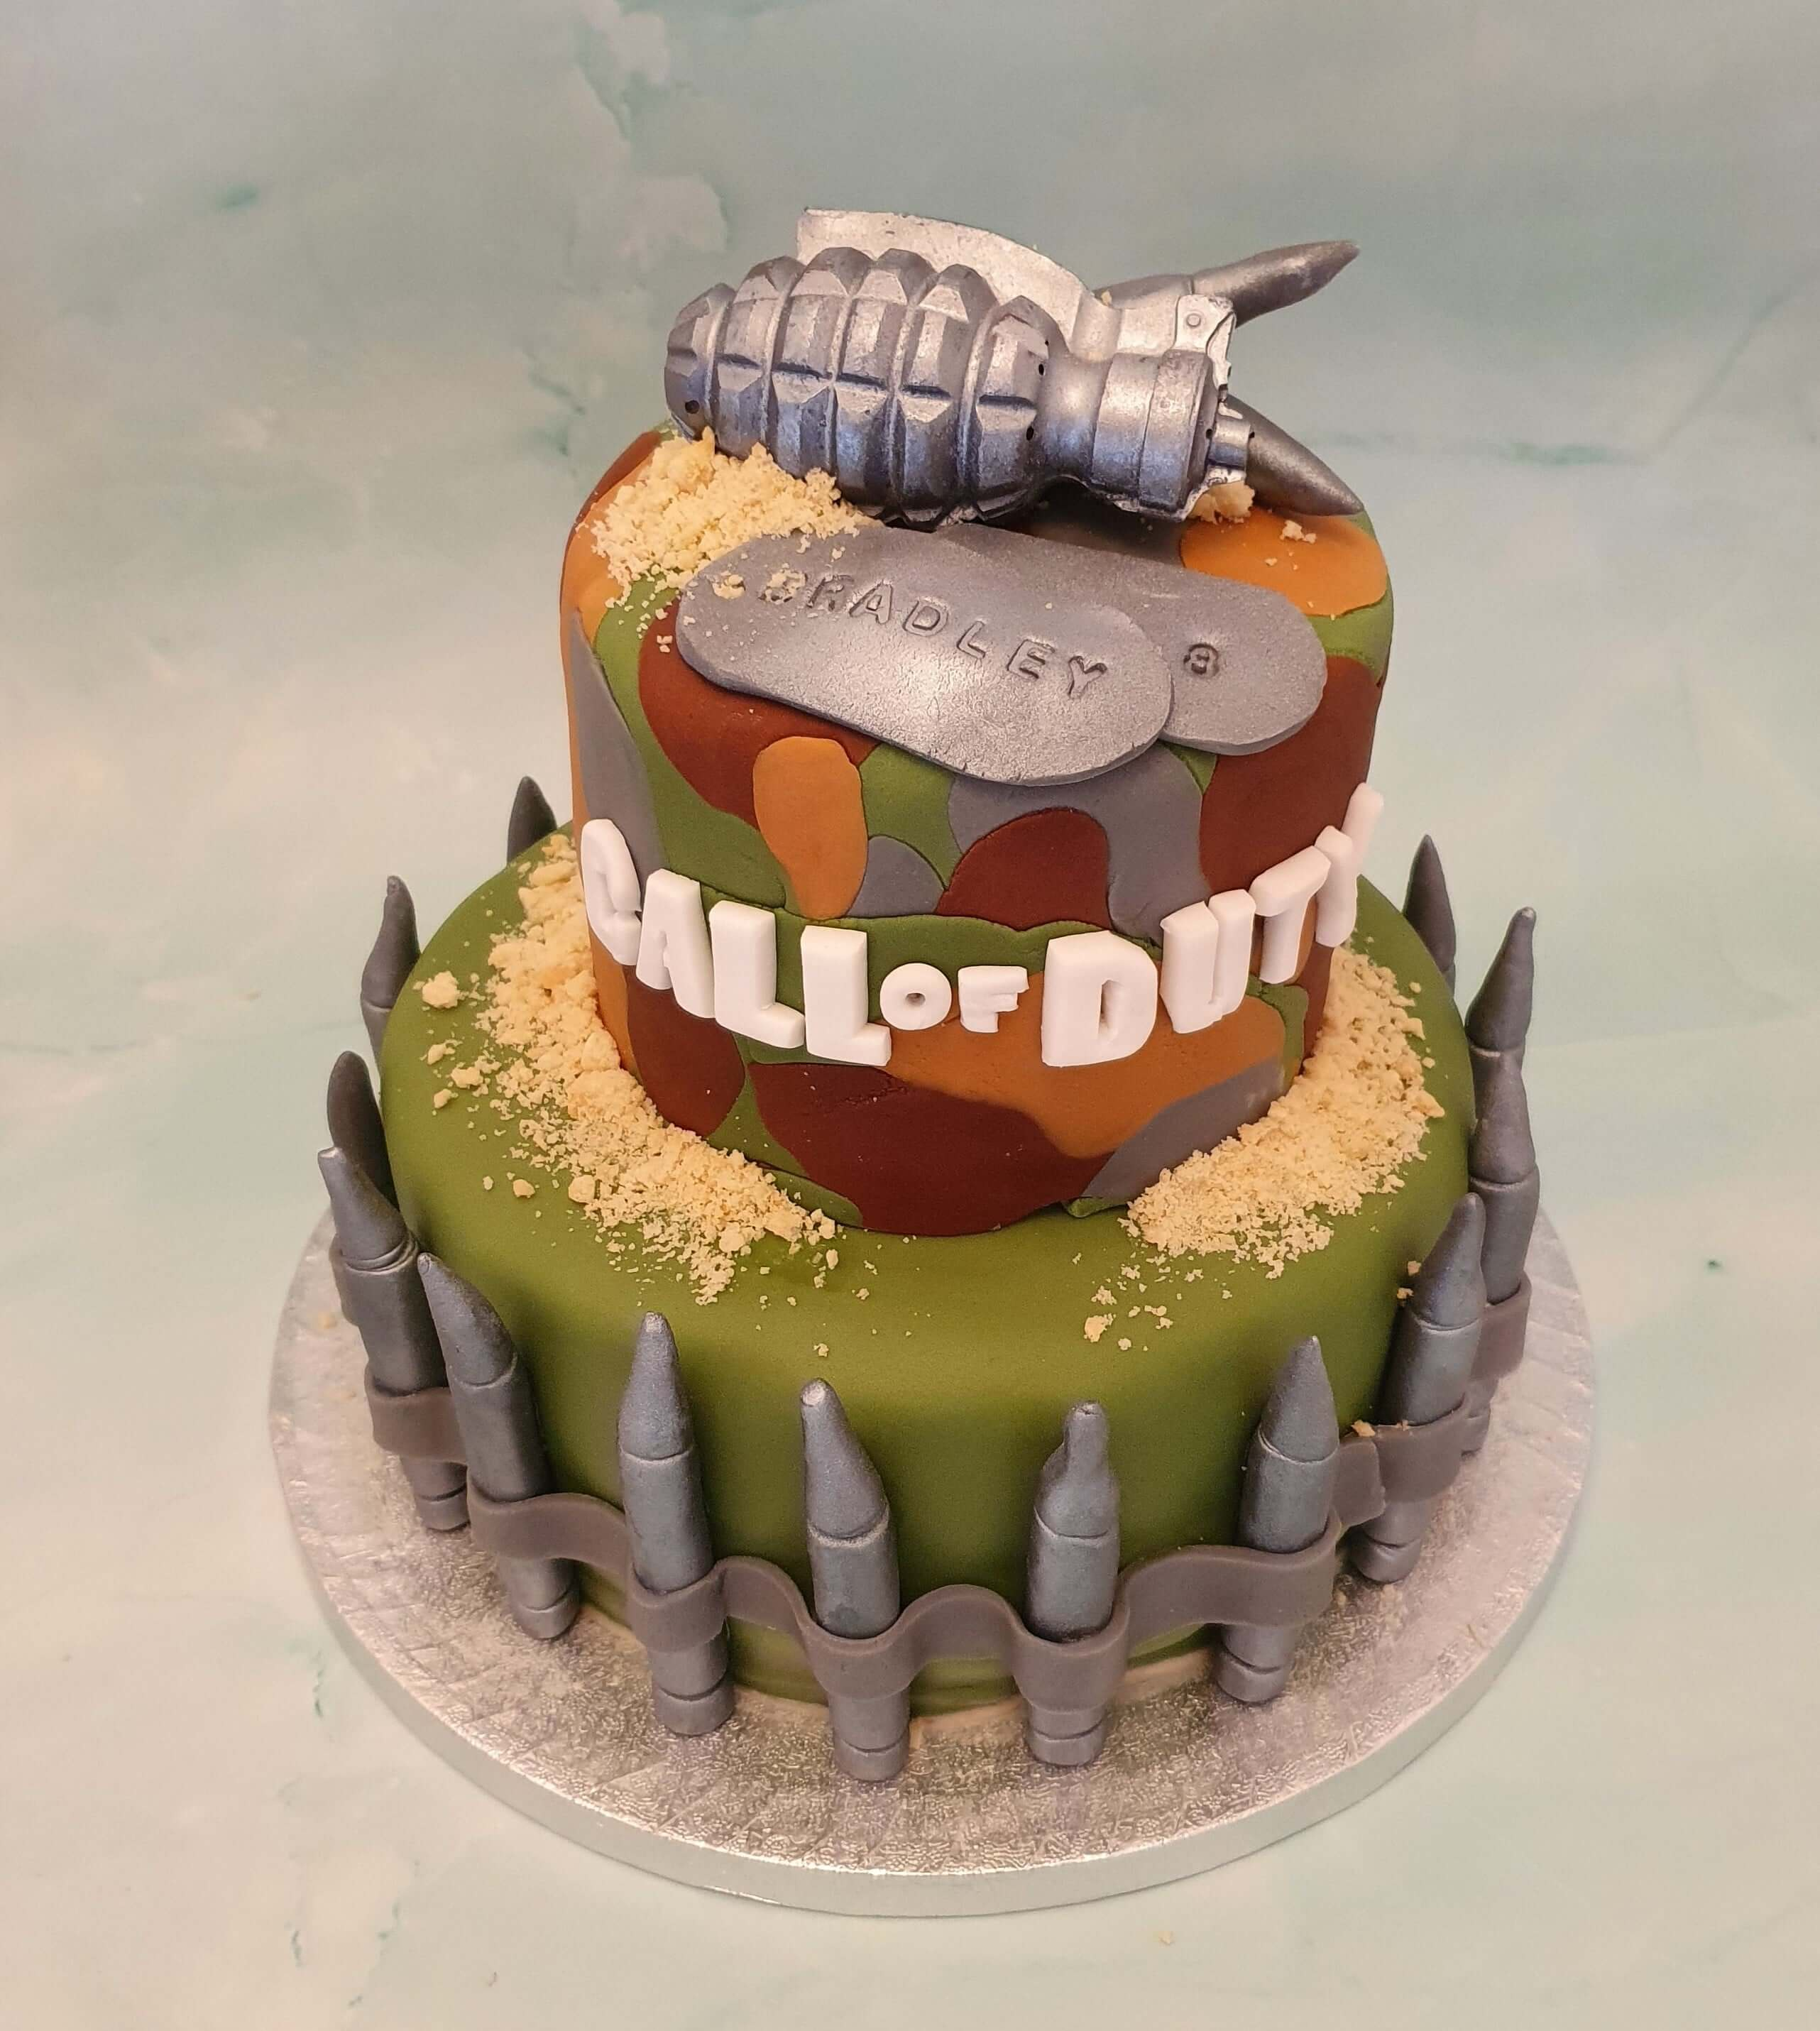 Call of Duty Birthday Cake Marie Makes Milton Keynes